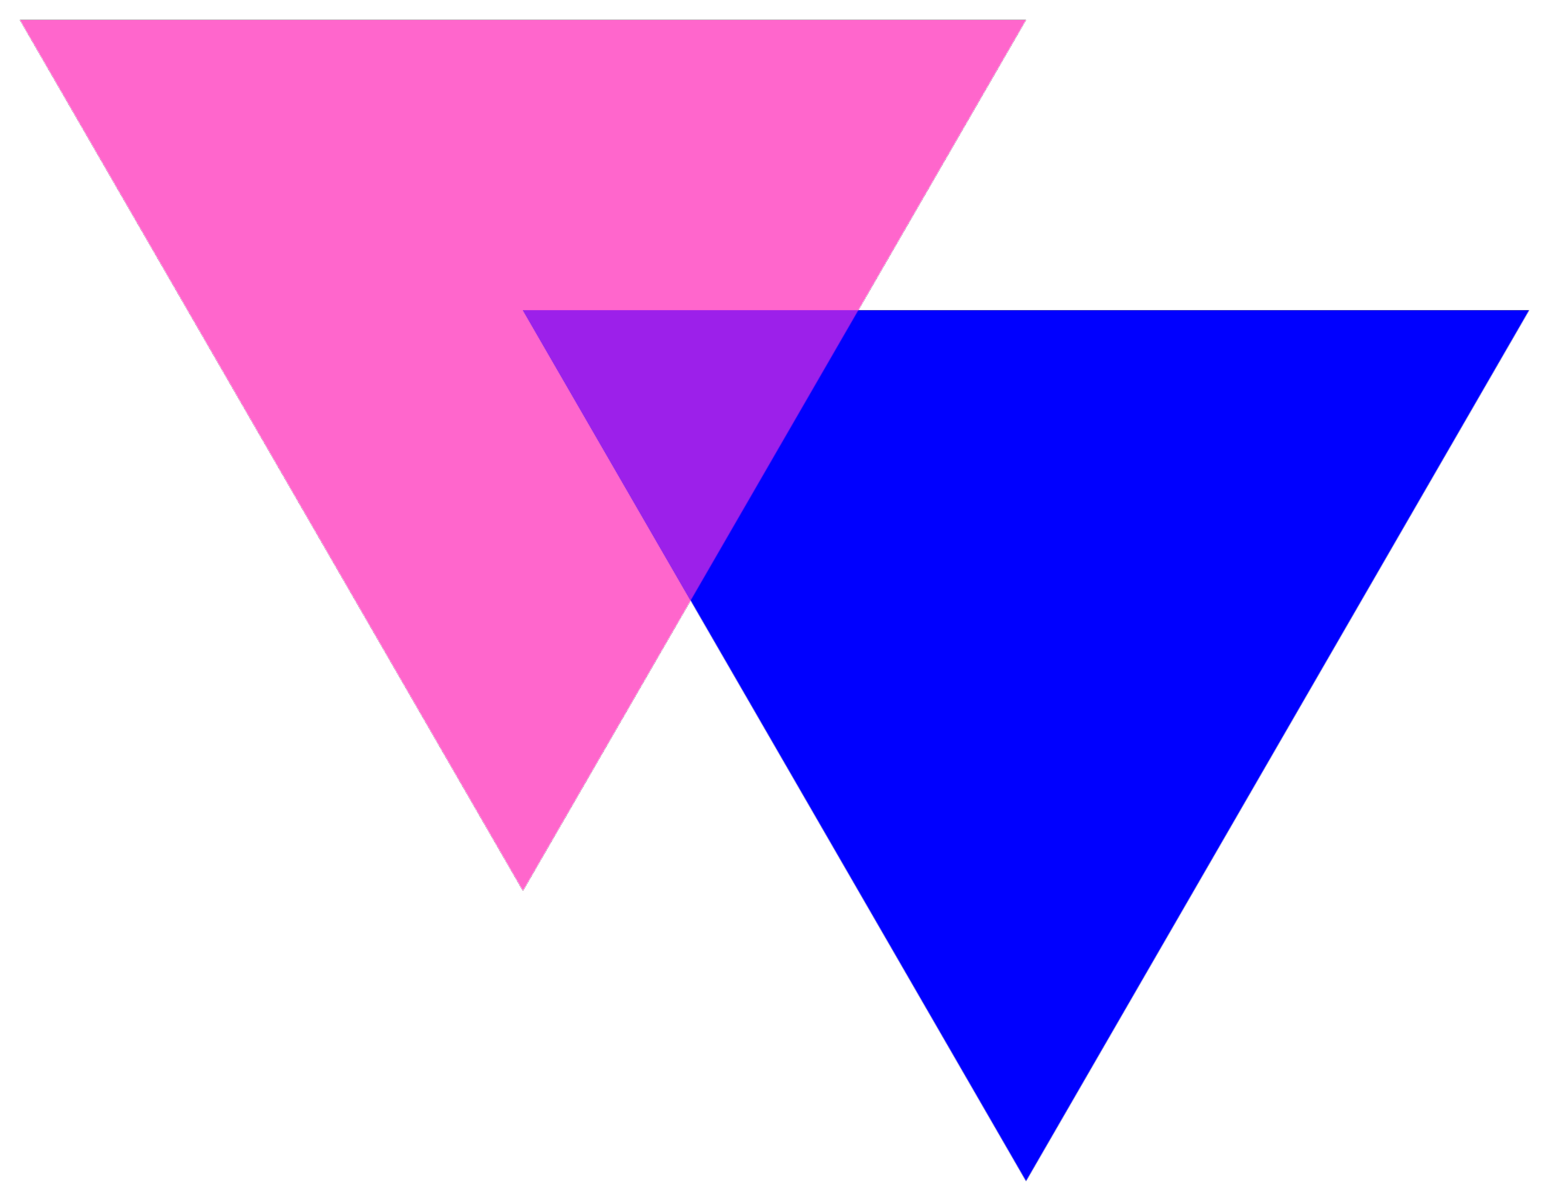 Chicago bisexual network